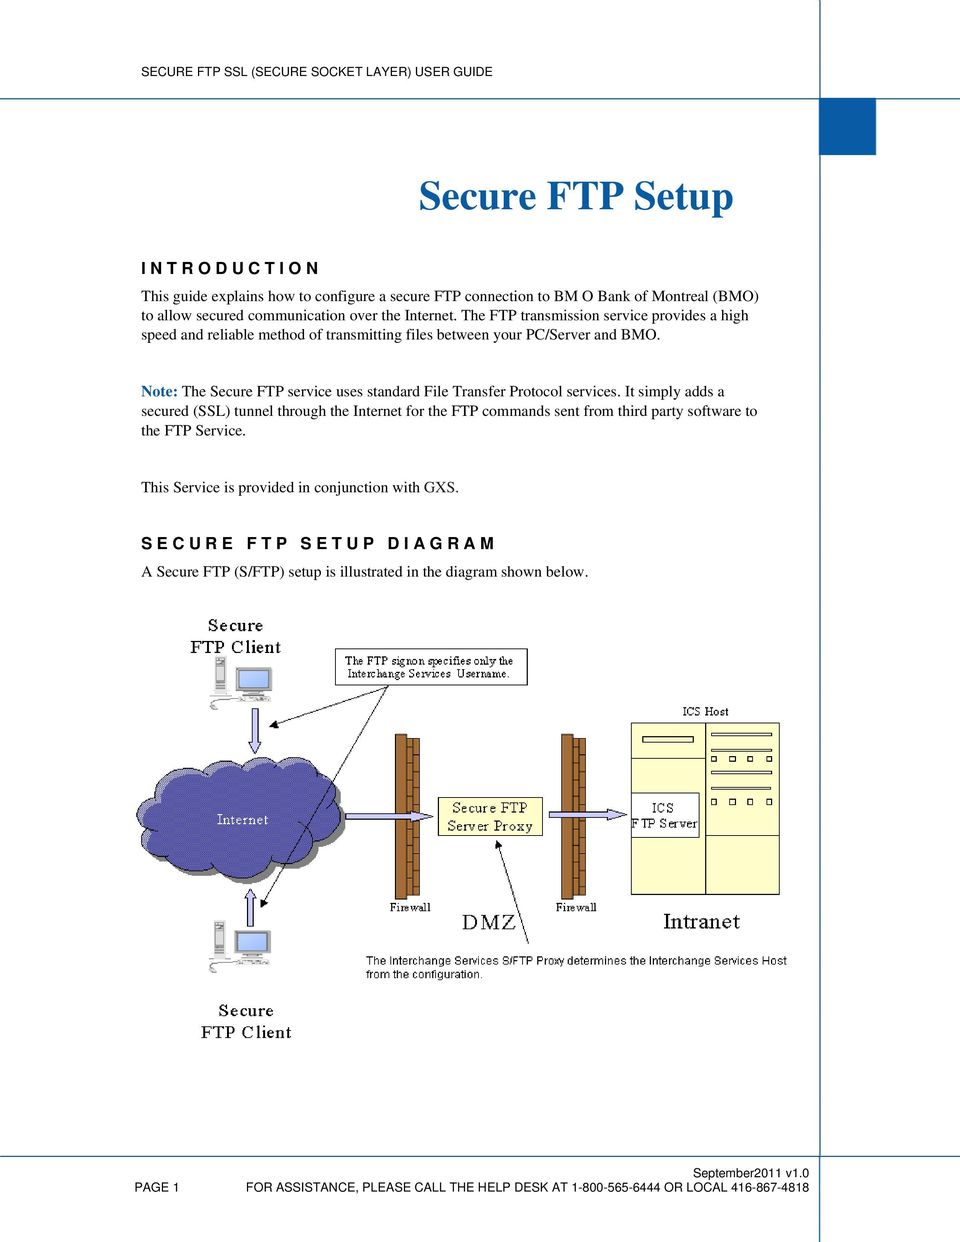 Note: The Secure FTP service uses standard File Transfer Protocol services.